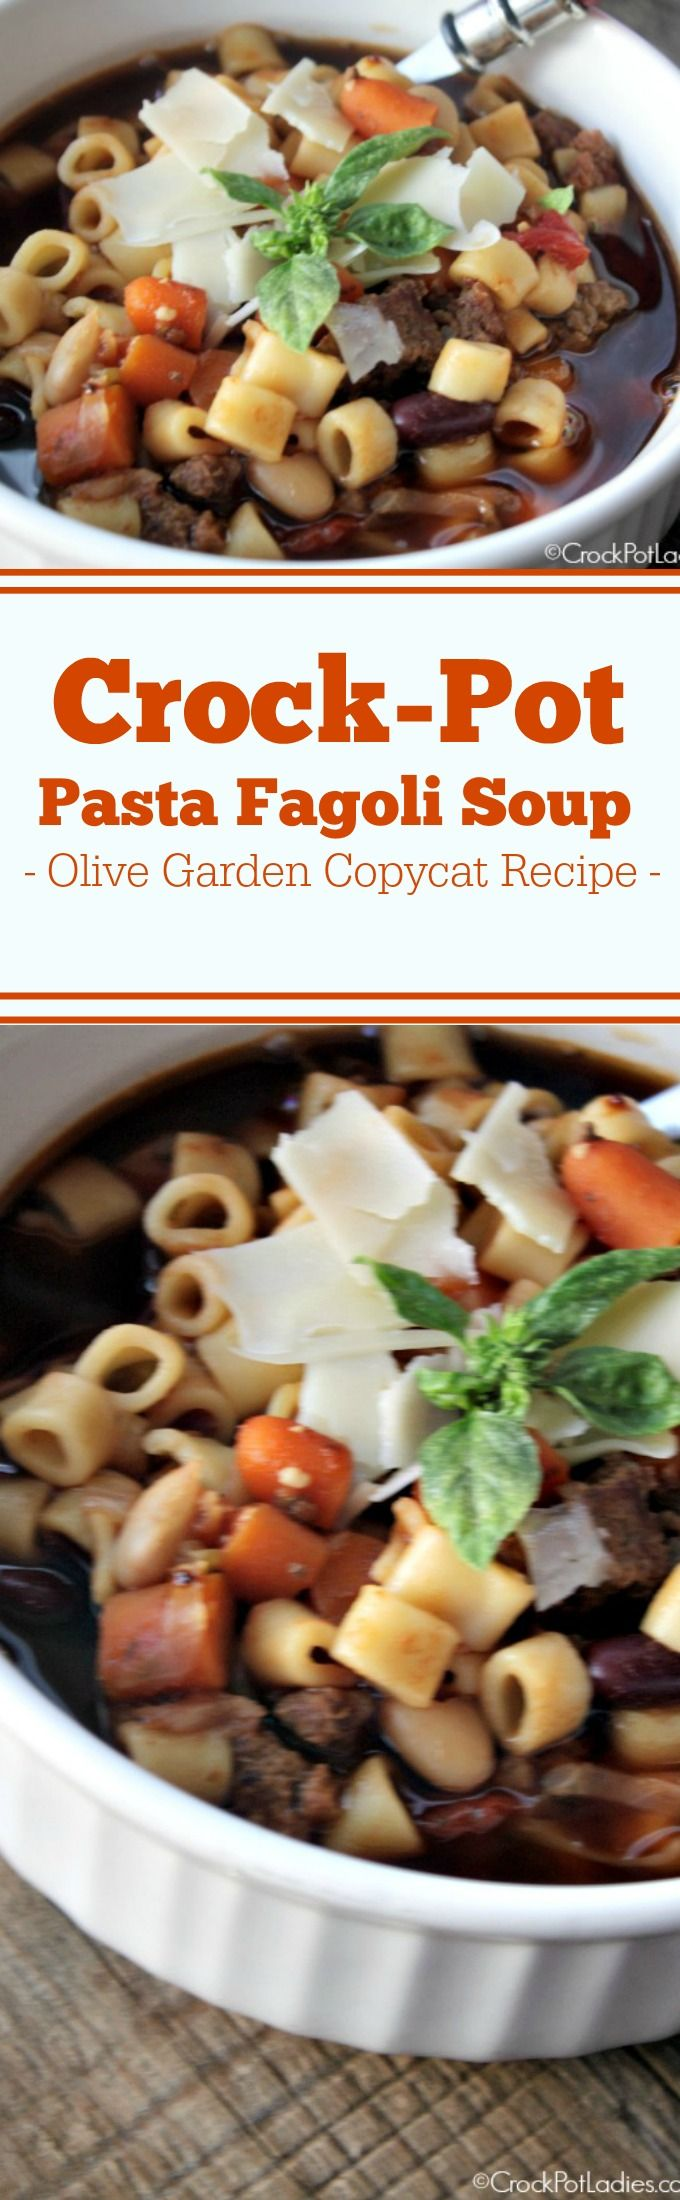 Crock-Pot Pasta Fagoli Soup (Olive Garden Copycat Recipe) - If you love the Pasta Fagoli Soup at Olive Garden restaurants you are going to LOVE this copycat version that you can make in your slow cooker! This recipe for Crock-Pot Pasta Fagoli Soup is warm and hearty full of flavorful vegetables, beans, ground beef and pasta all swimming in a delicious Italian broth! | CrockPotLadies.com via @CrockPotLadies